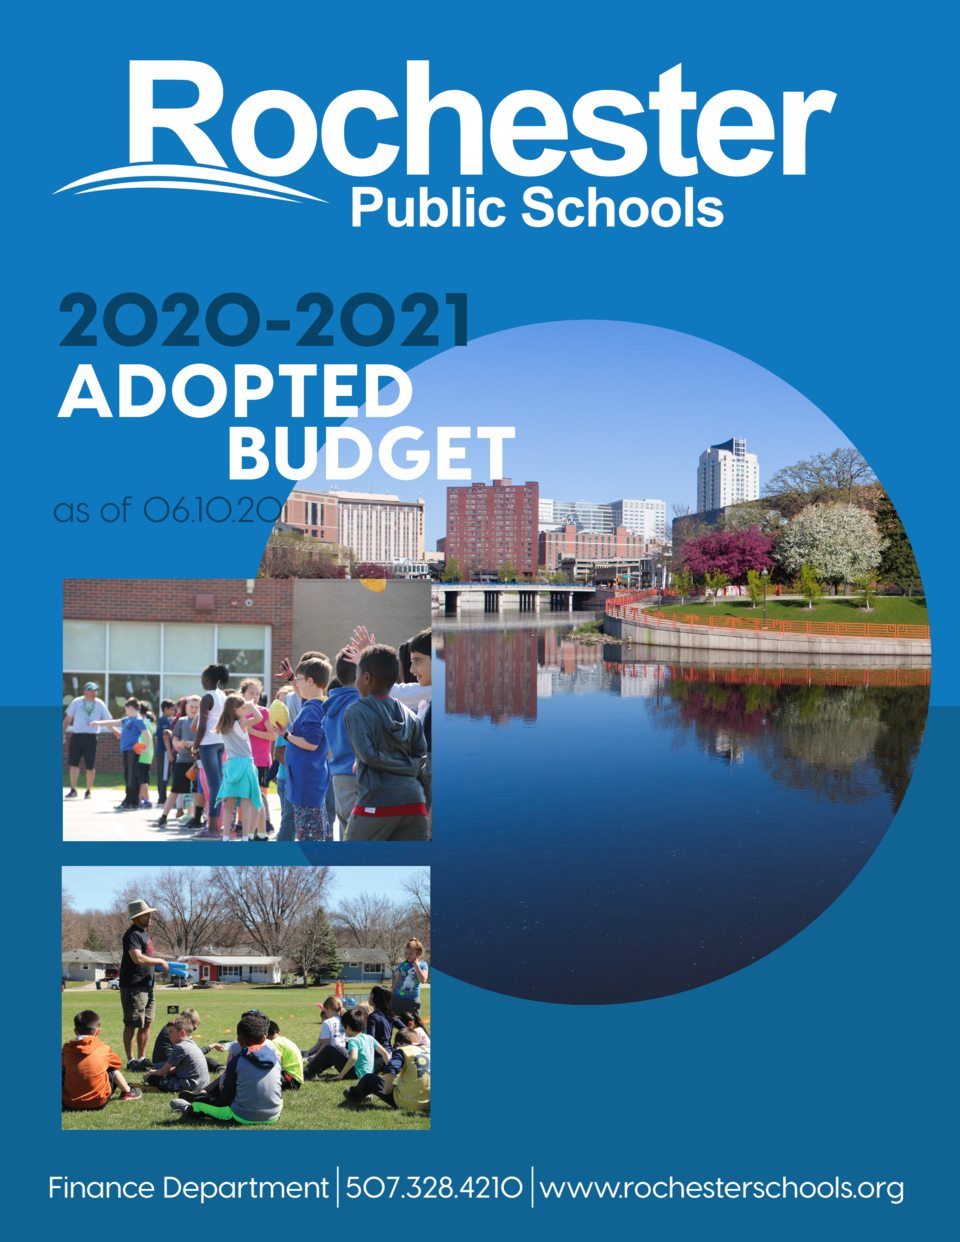 2020-2021 ADOPTED BUDGET  as of 06.10.20  Finance Department 507.328.4210 www.rochesterschools.org 1